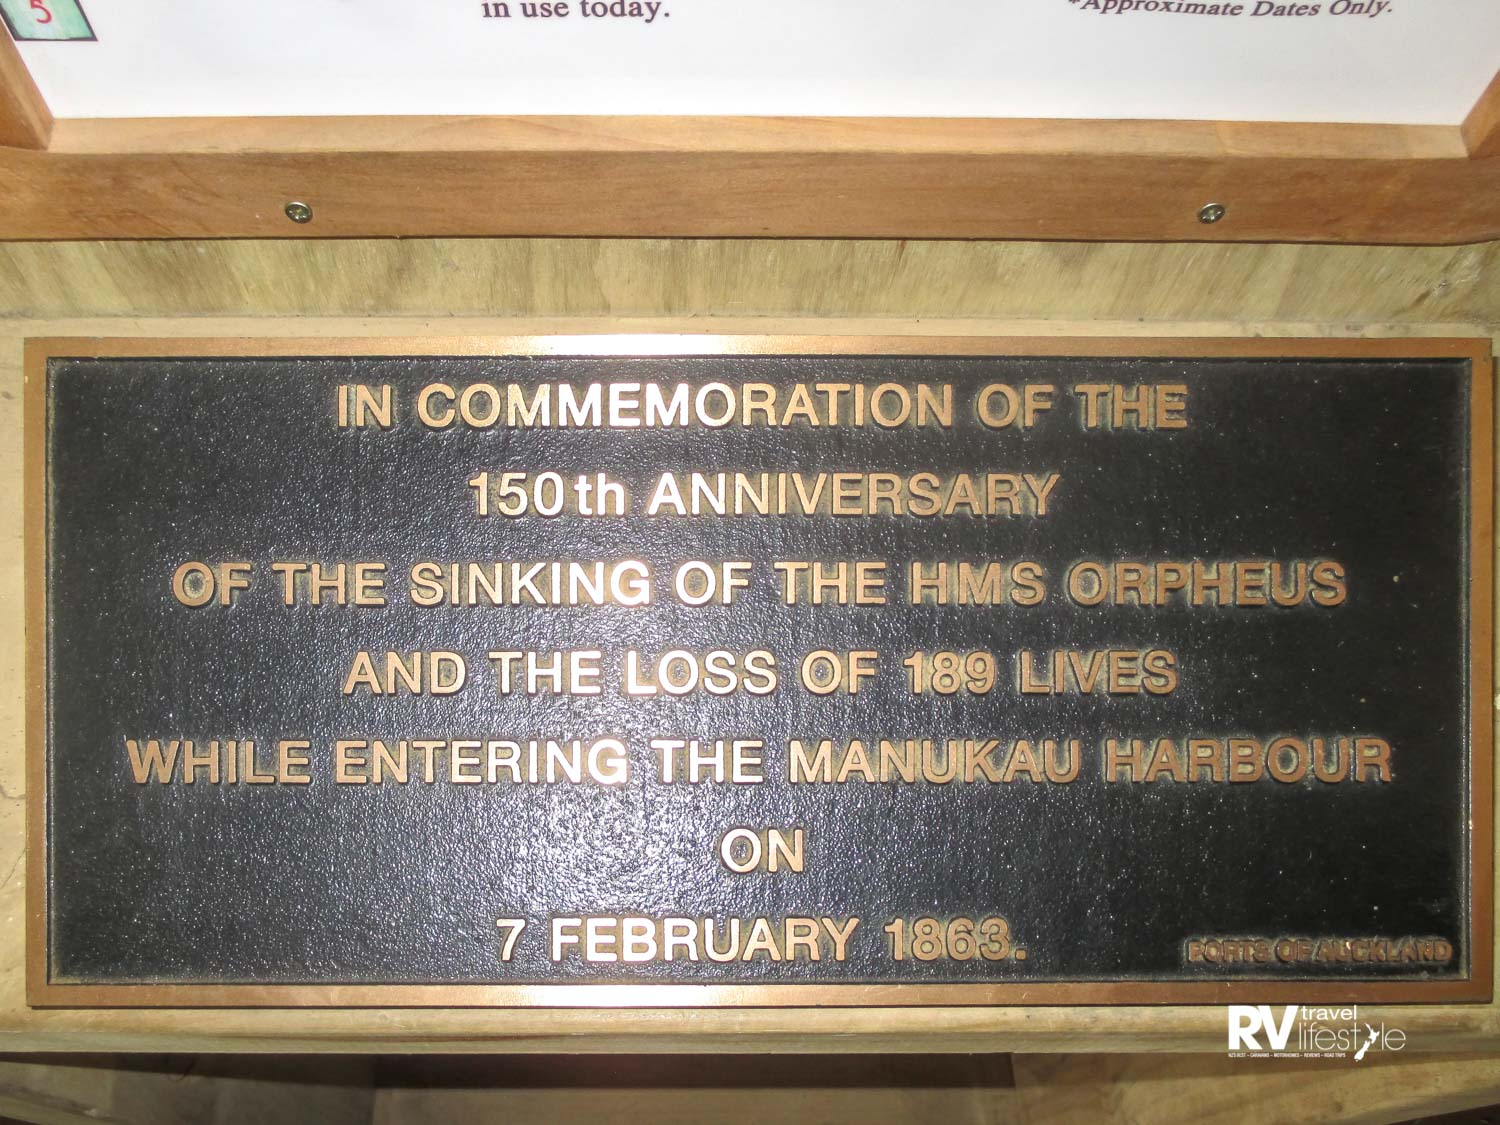 Memorial plaque for the wreck of the Orpheus